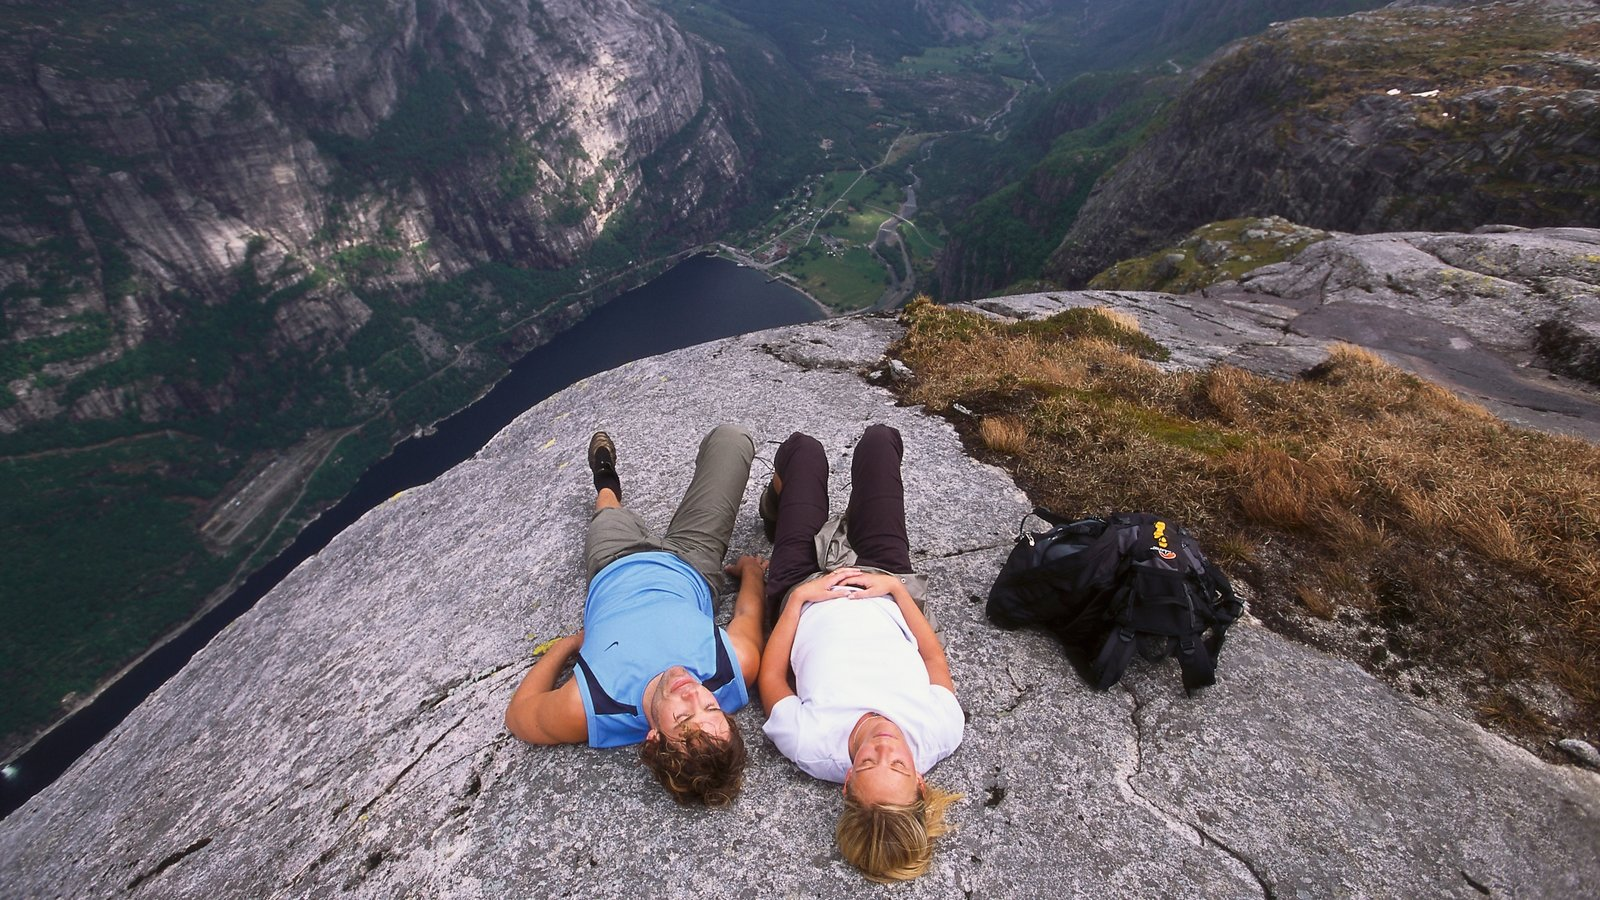 Kjerag which includes a gorge or canyon, mountains and hiking or walking